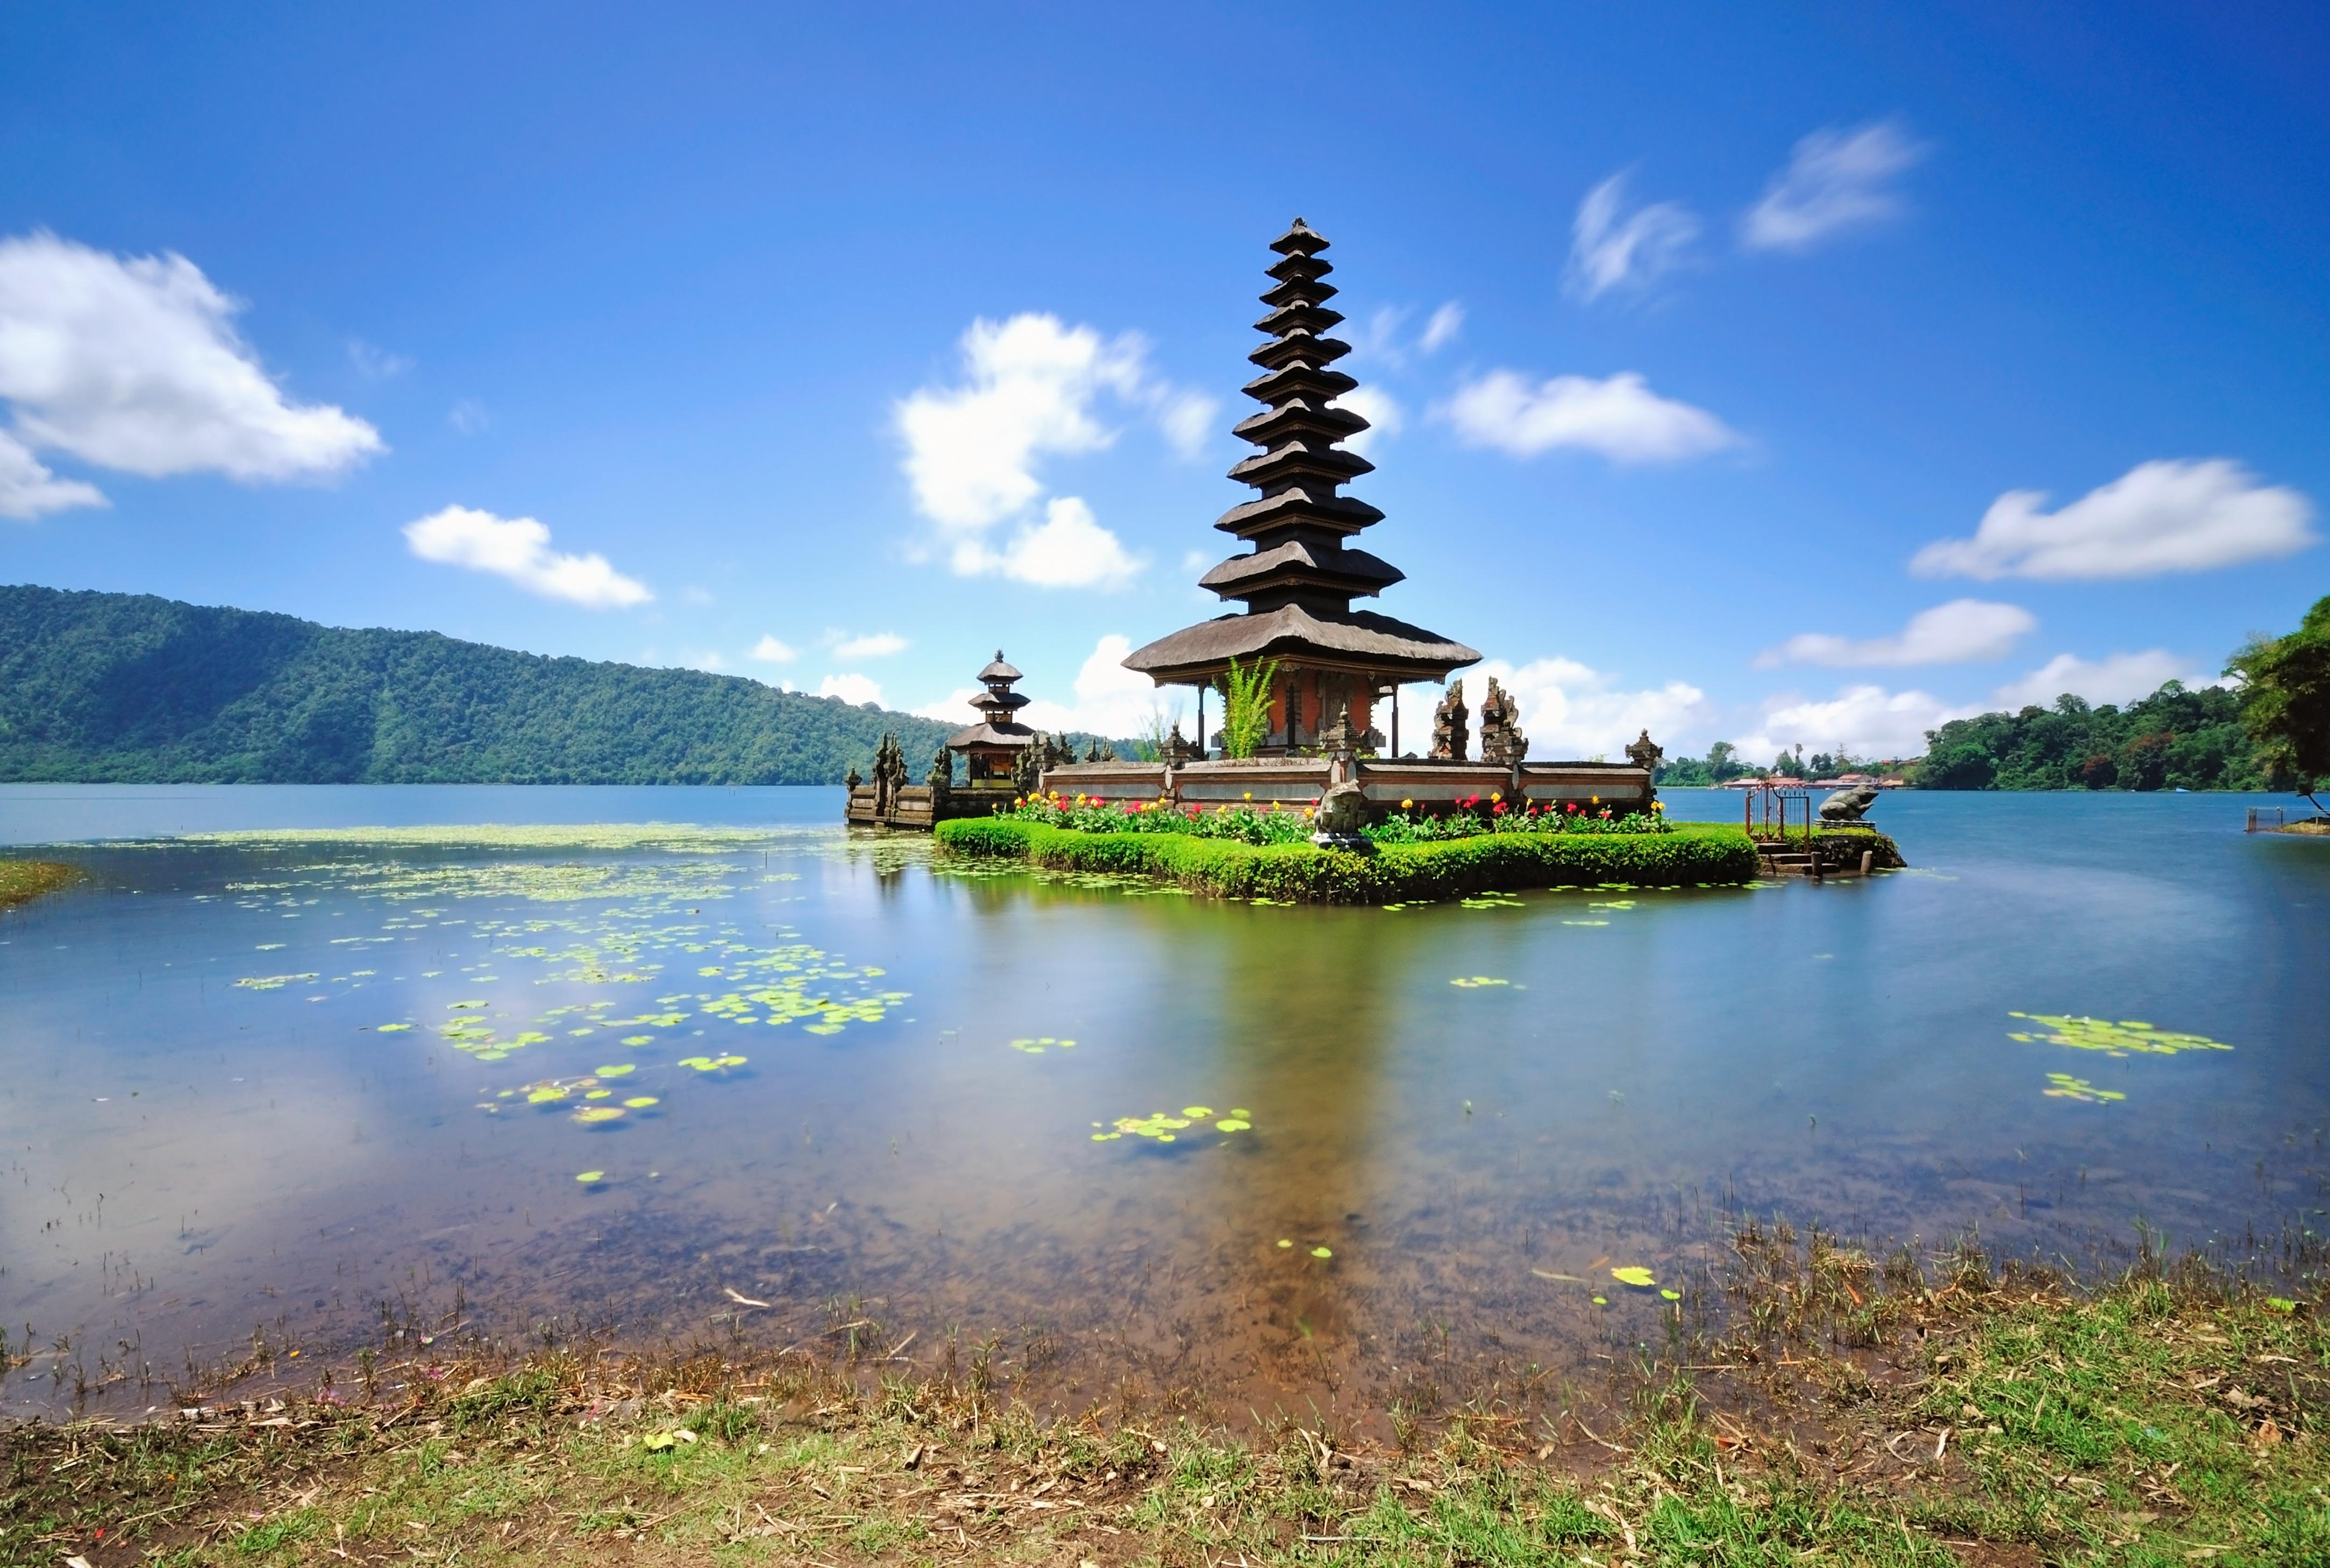 /optitravel/online/www/layout22/single_product.php?pkt_id=339&Produto=Incrível Bali&destino=INDONÉSIA